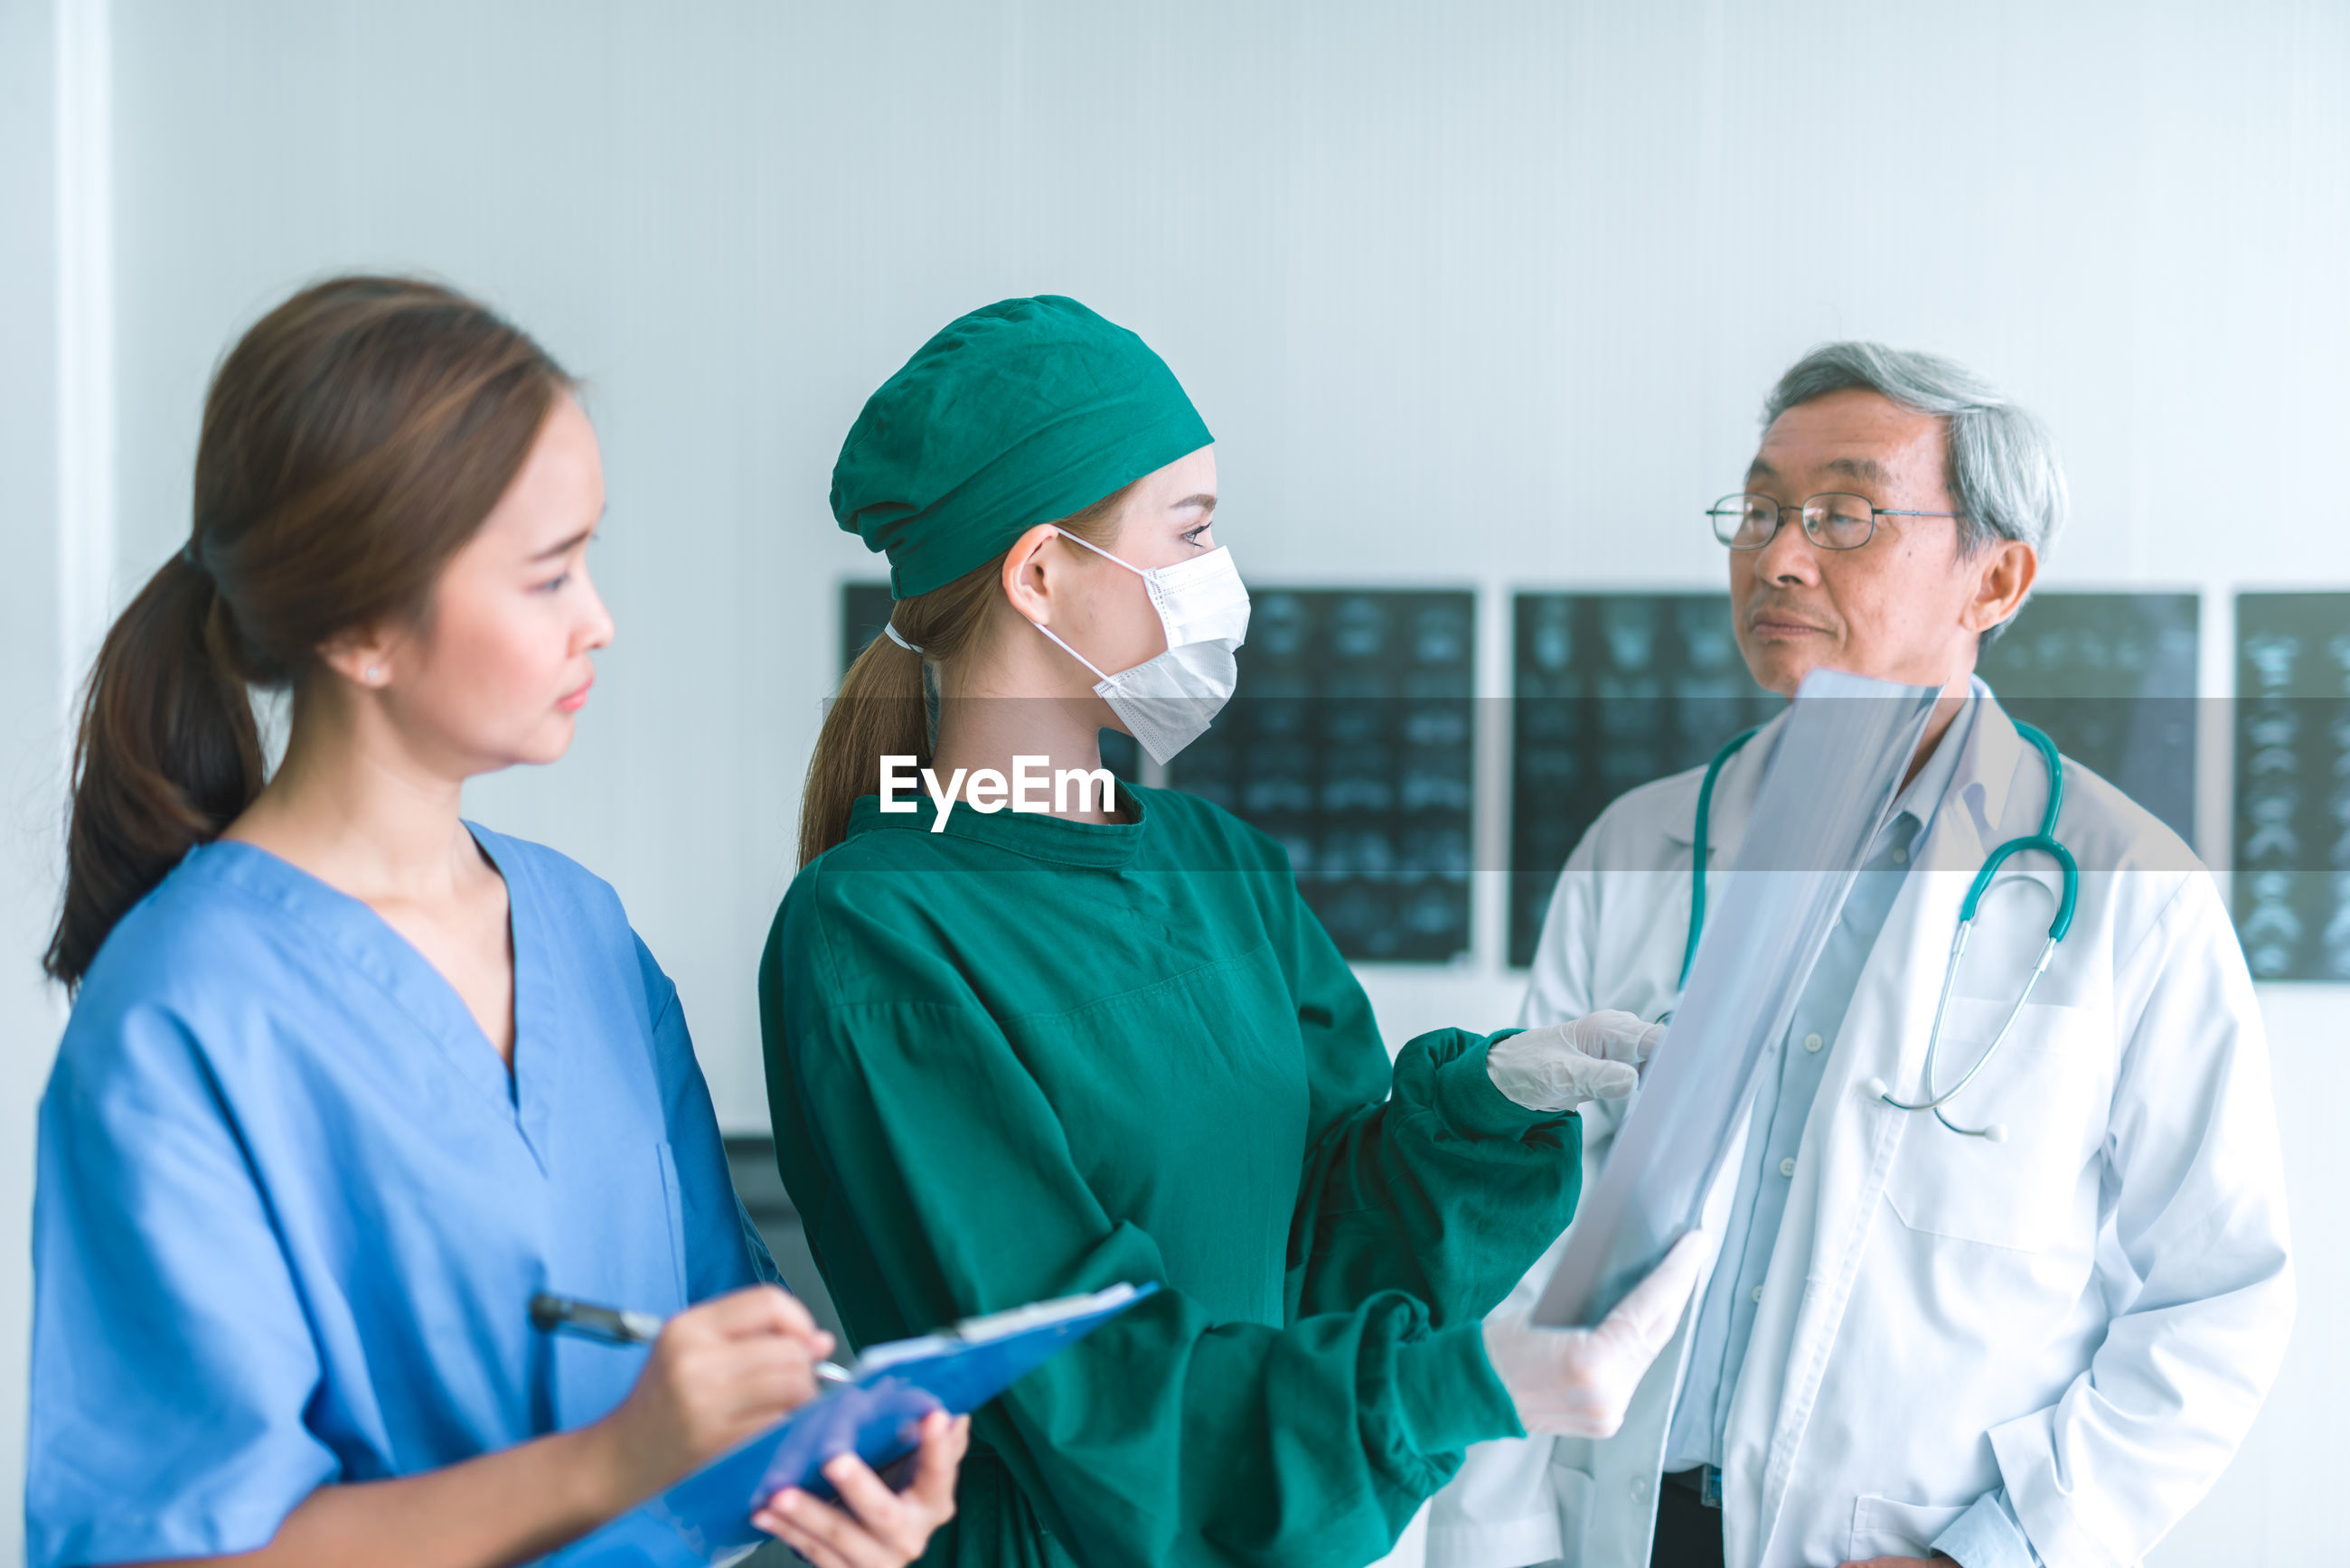 Doctors and nurse discussing while standing in hospital